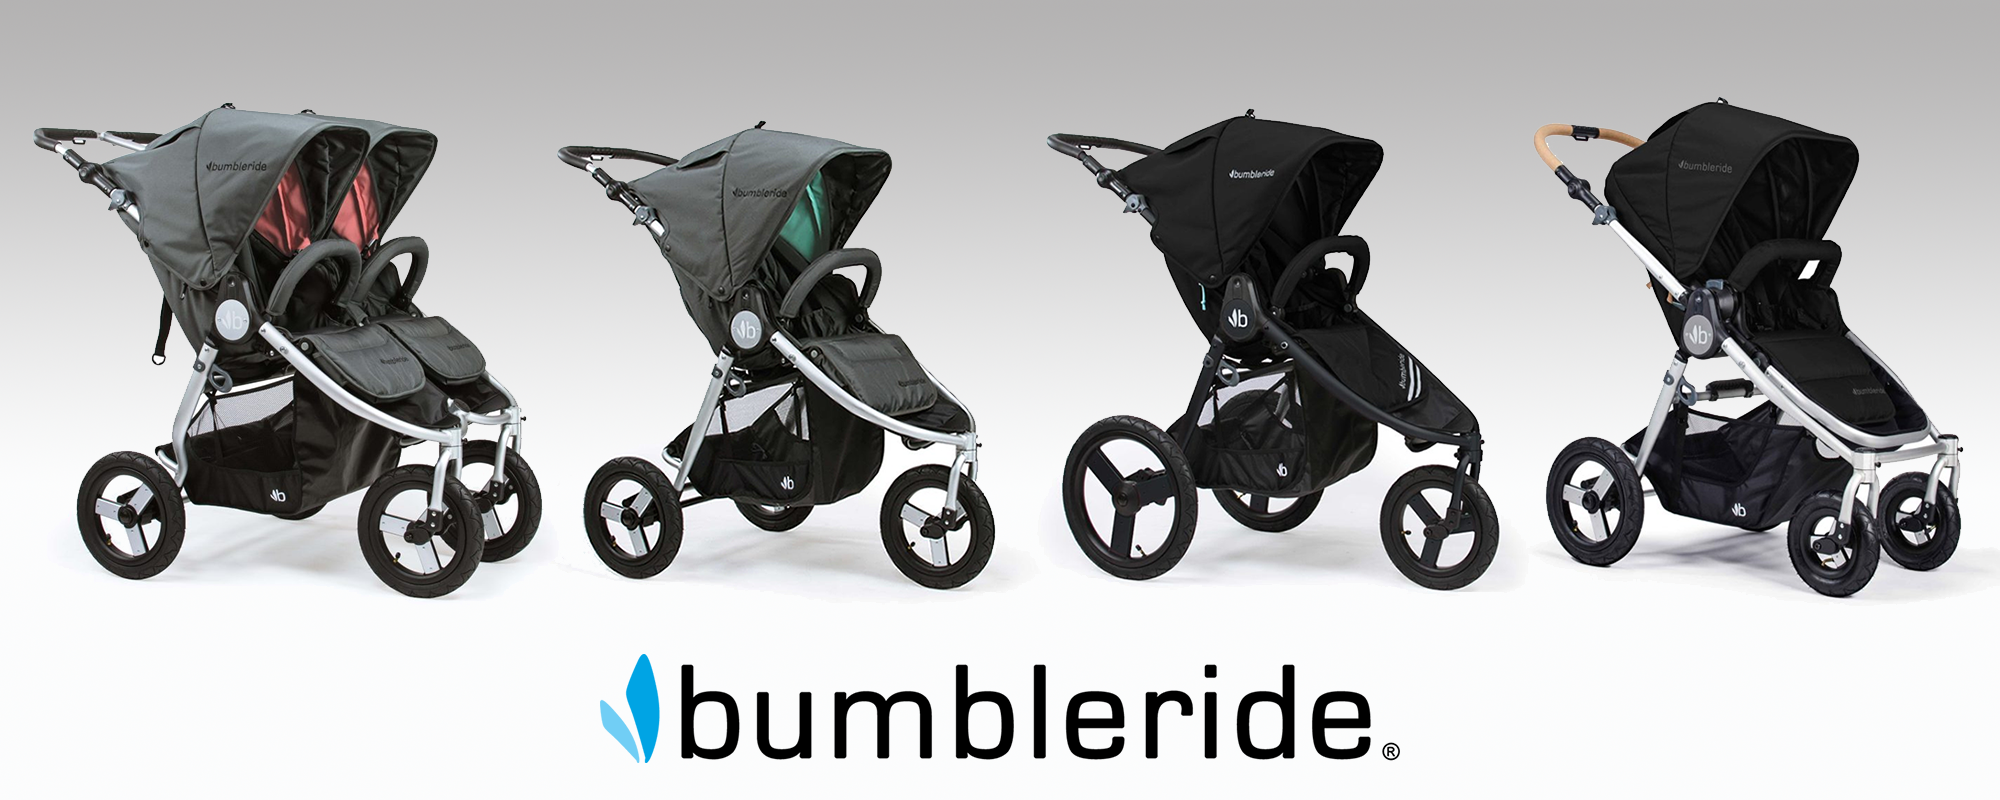 Bumbleride Banner 800 x 2000 px